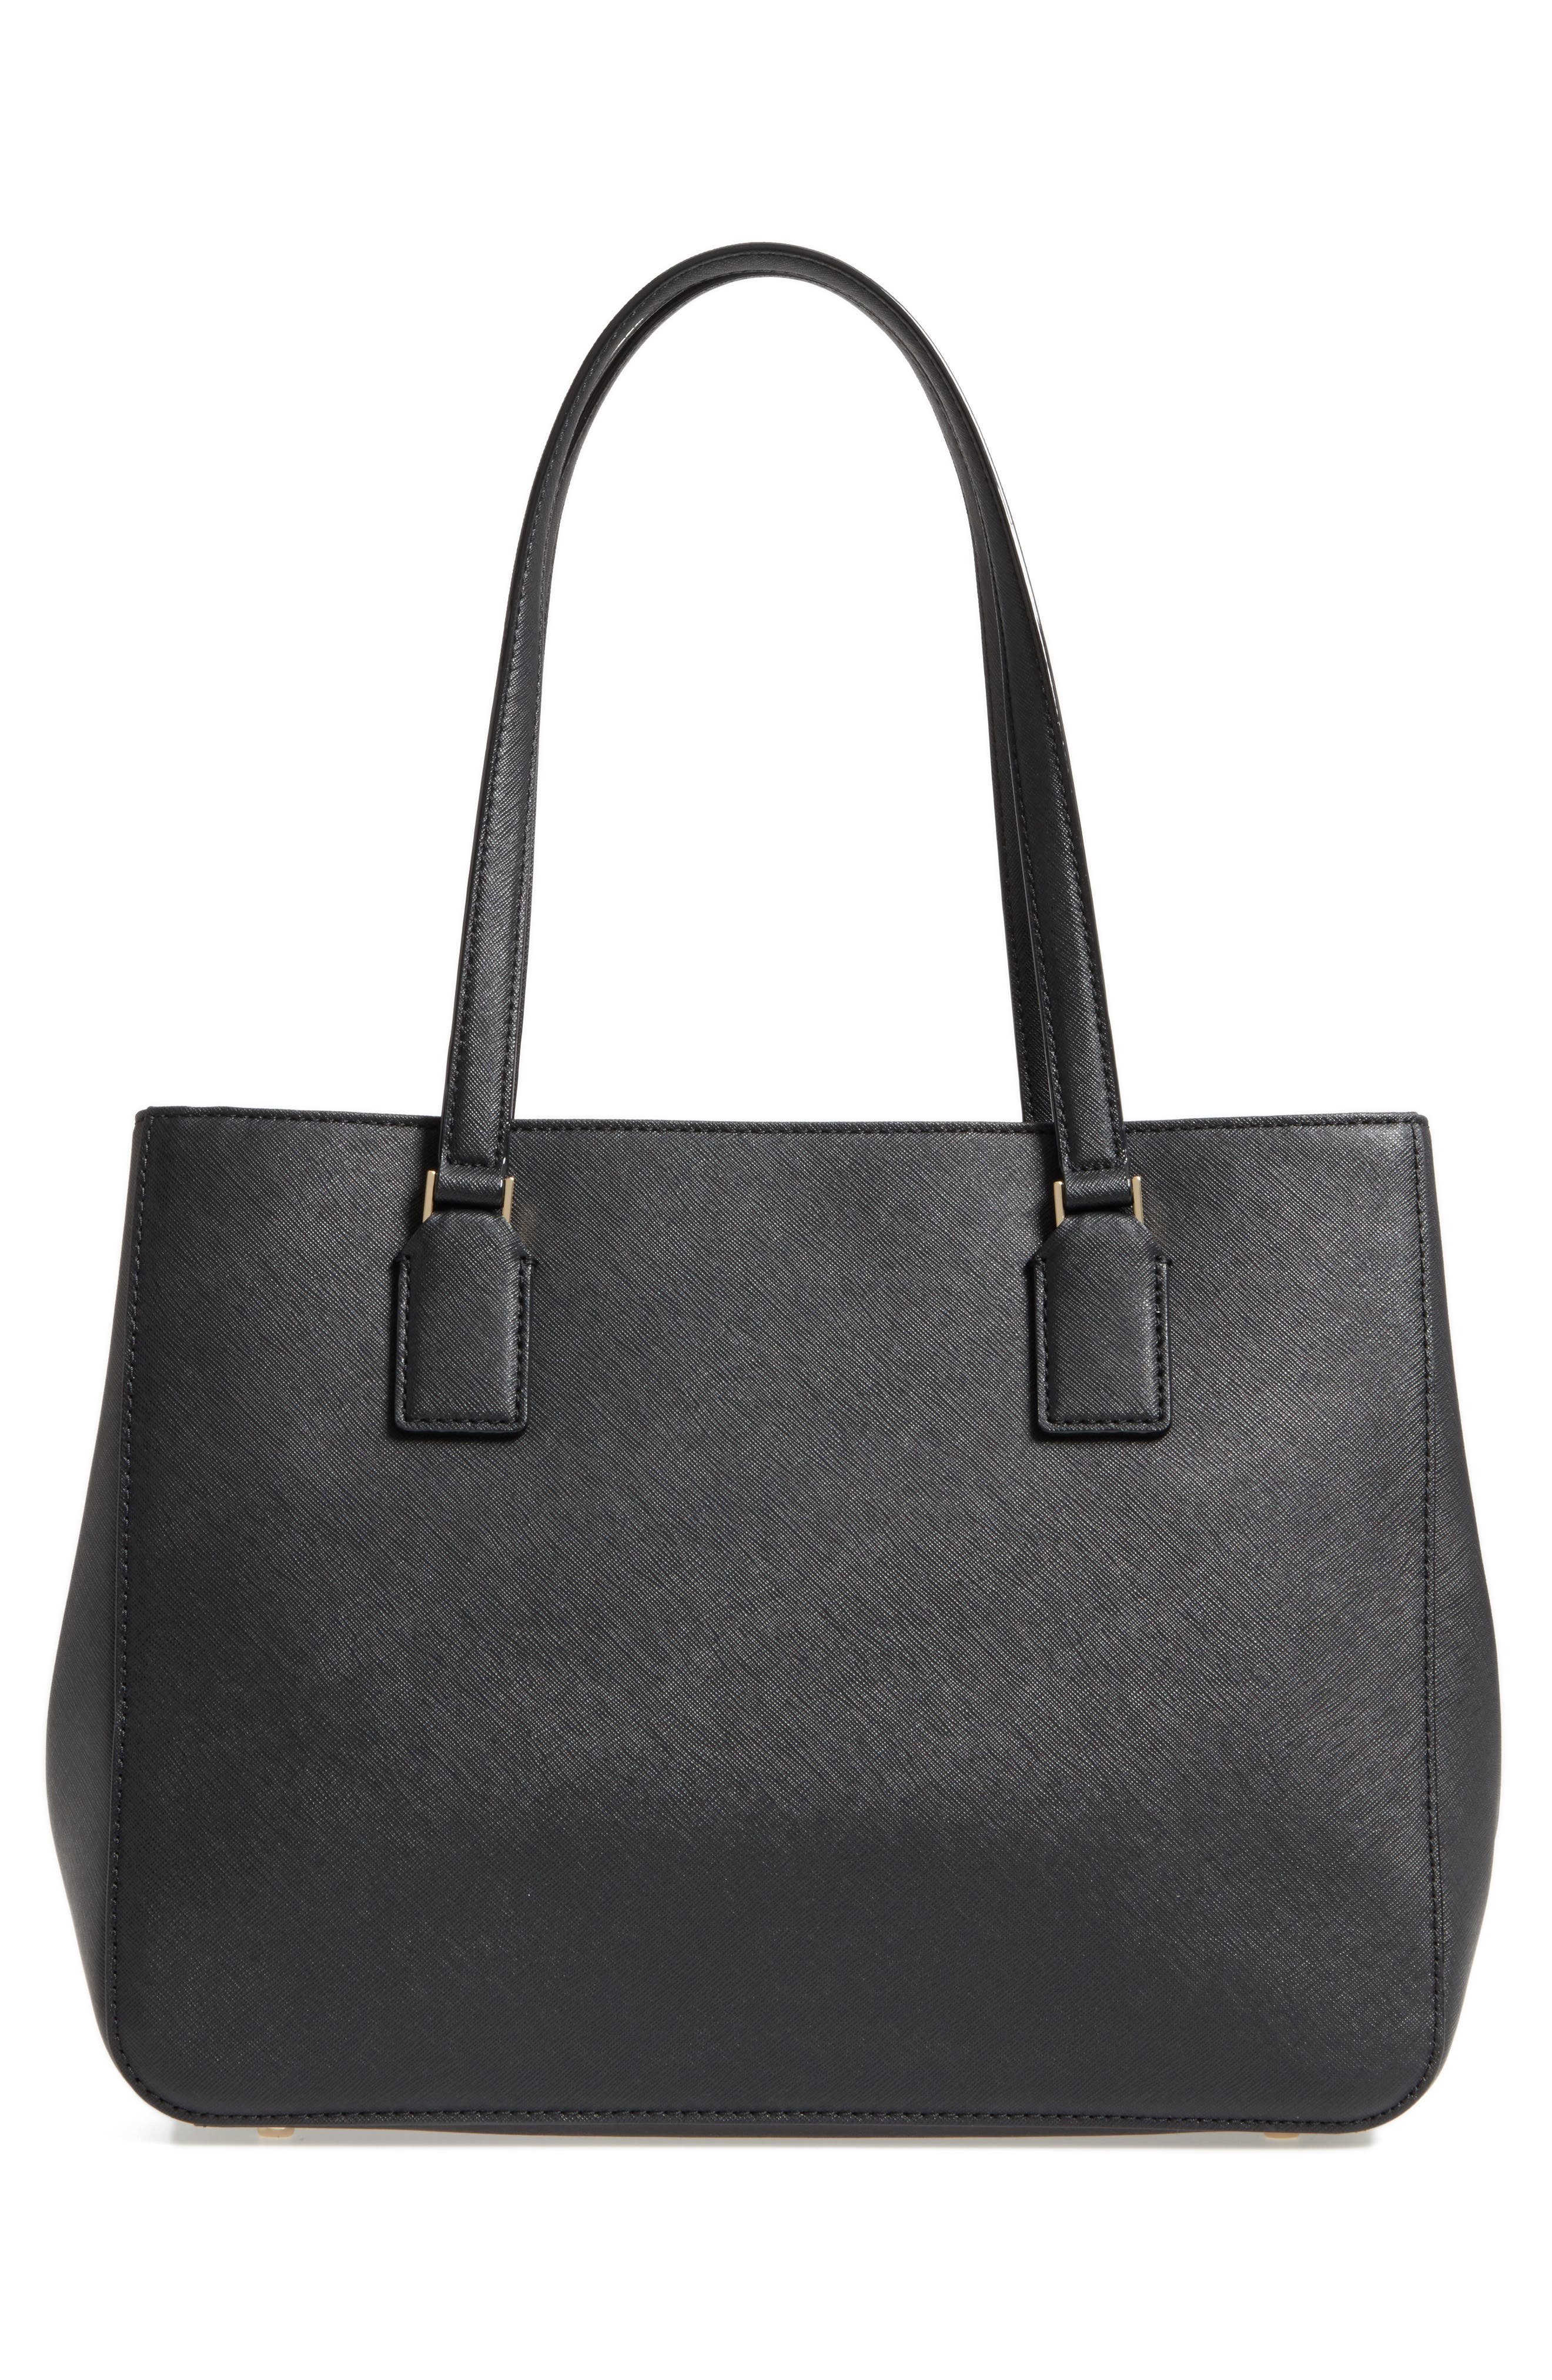 cameron street - zooey leather tote,                             Alternate thumbnail 3, color,                             Black